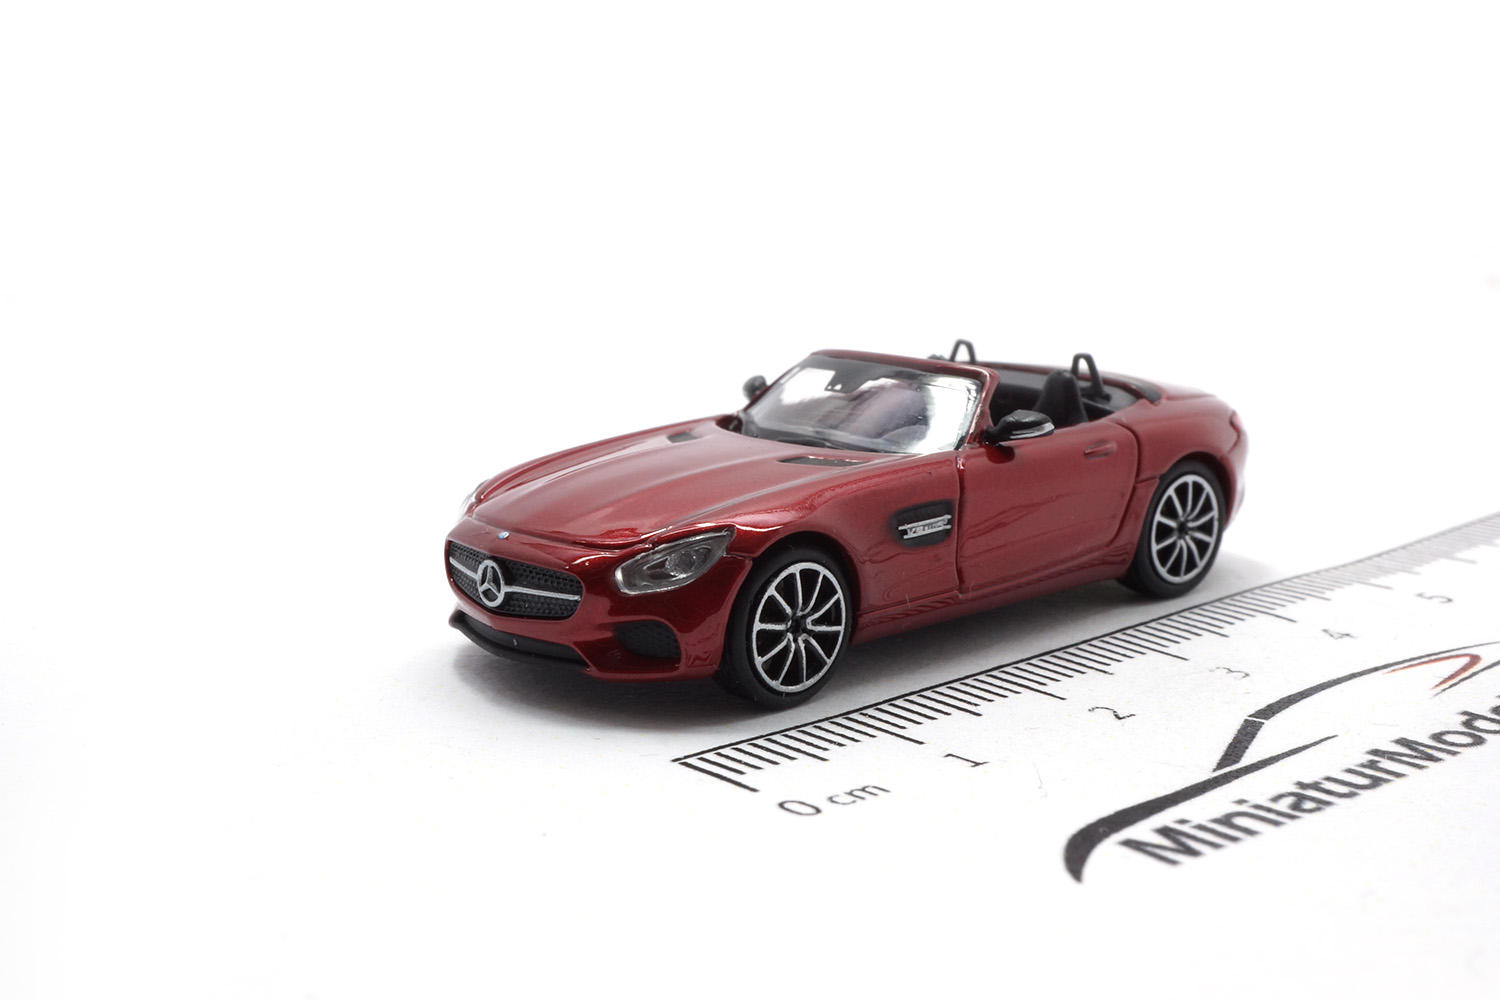 Minichamps 870037134 Mercedes-AMG GTS Cabrio - Rot - 2017 1:87